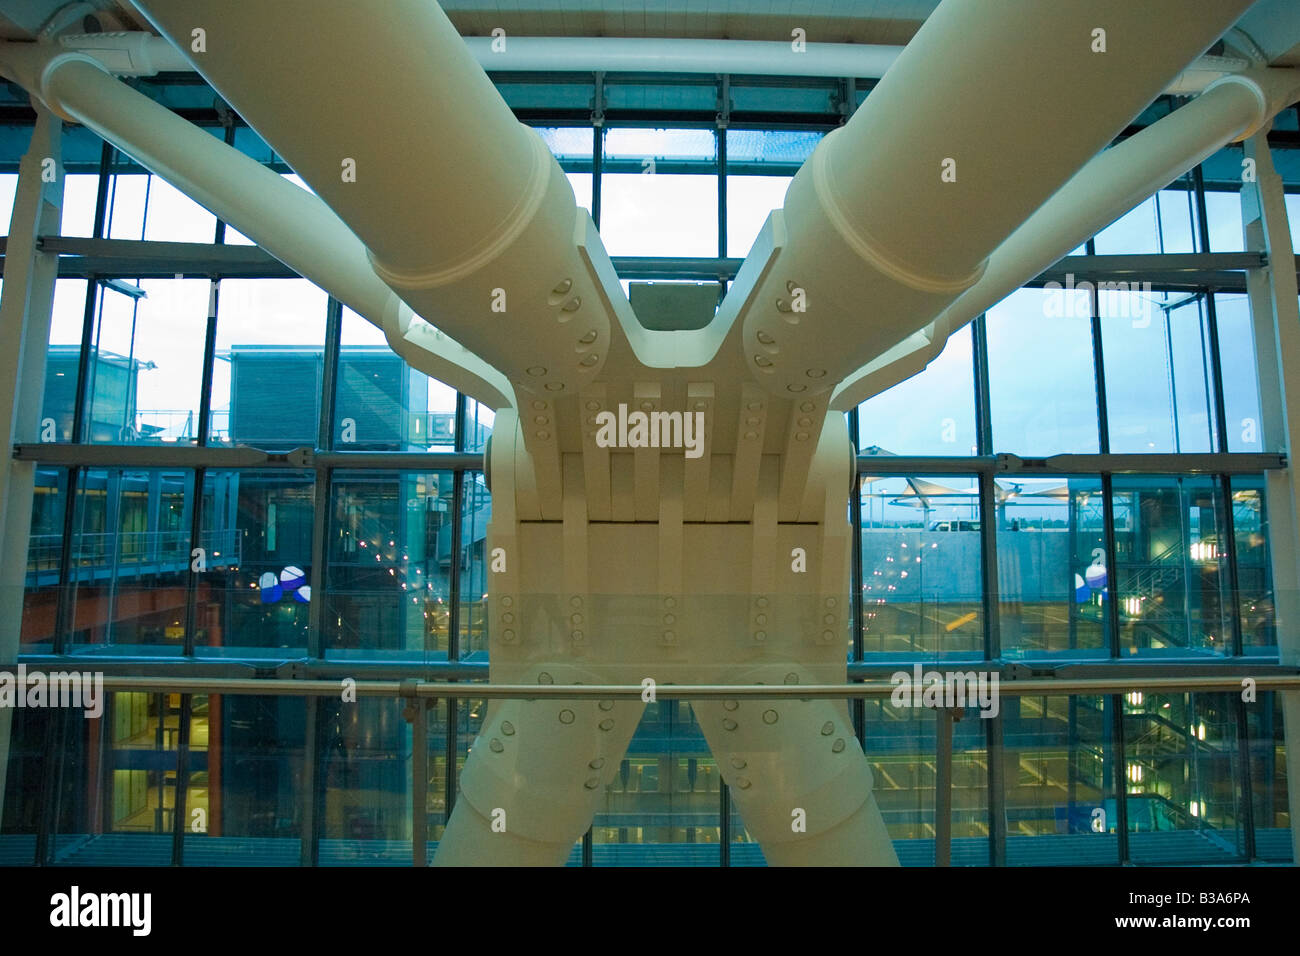 Architectural Support Steelwork in Heathrow Terminal 5 - Stock Image